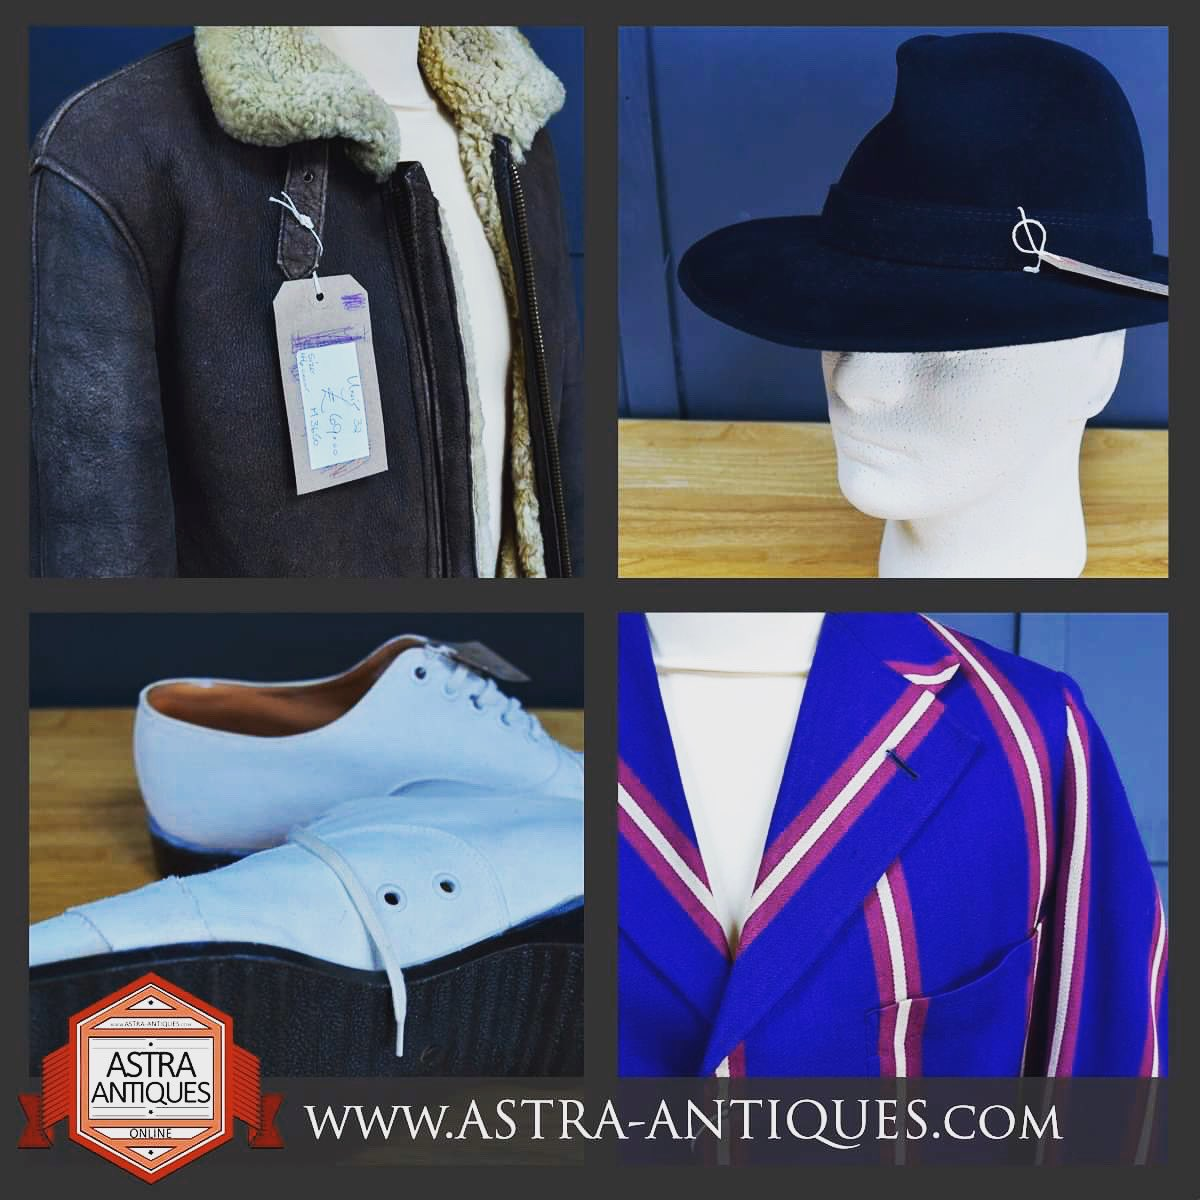 New items added to our men's vintage clothes section over on the website where you can have a virtual shopping experience @www.astra-antiques.com #vintageclothes #retro #vintagefrocks #retro #vintagehats #virtualantiquesshopping #astraantiquescentre #hemswell #lincolnshire #mens https://t.co/KUGIwFOBqD